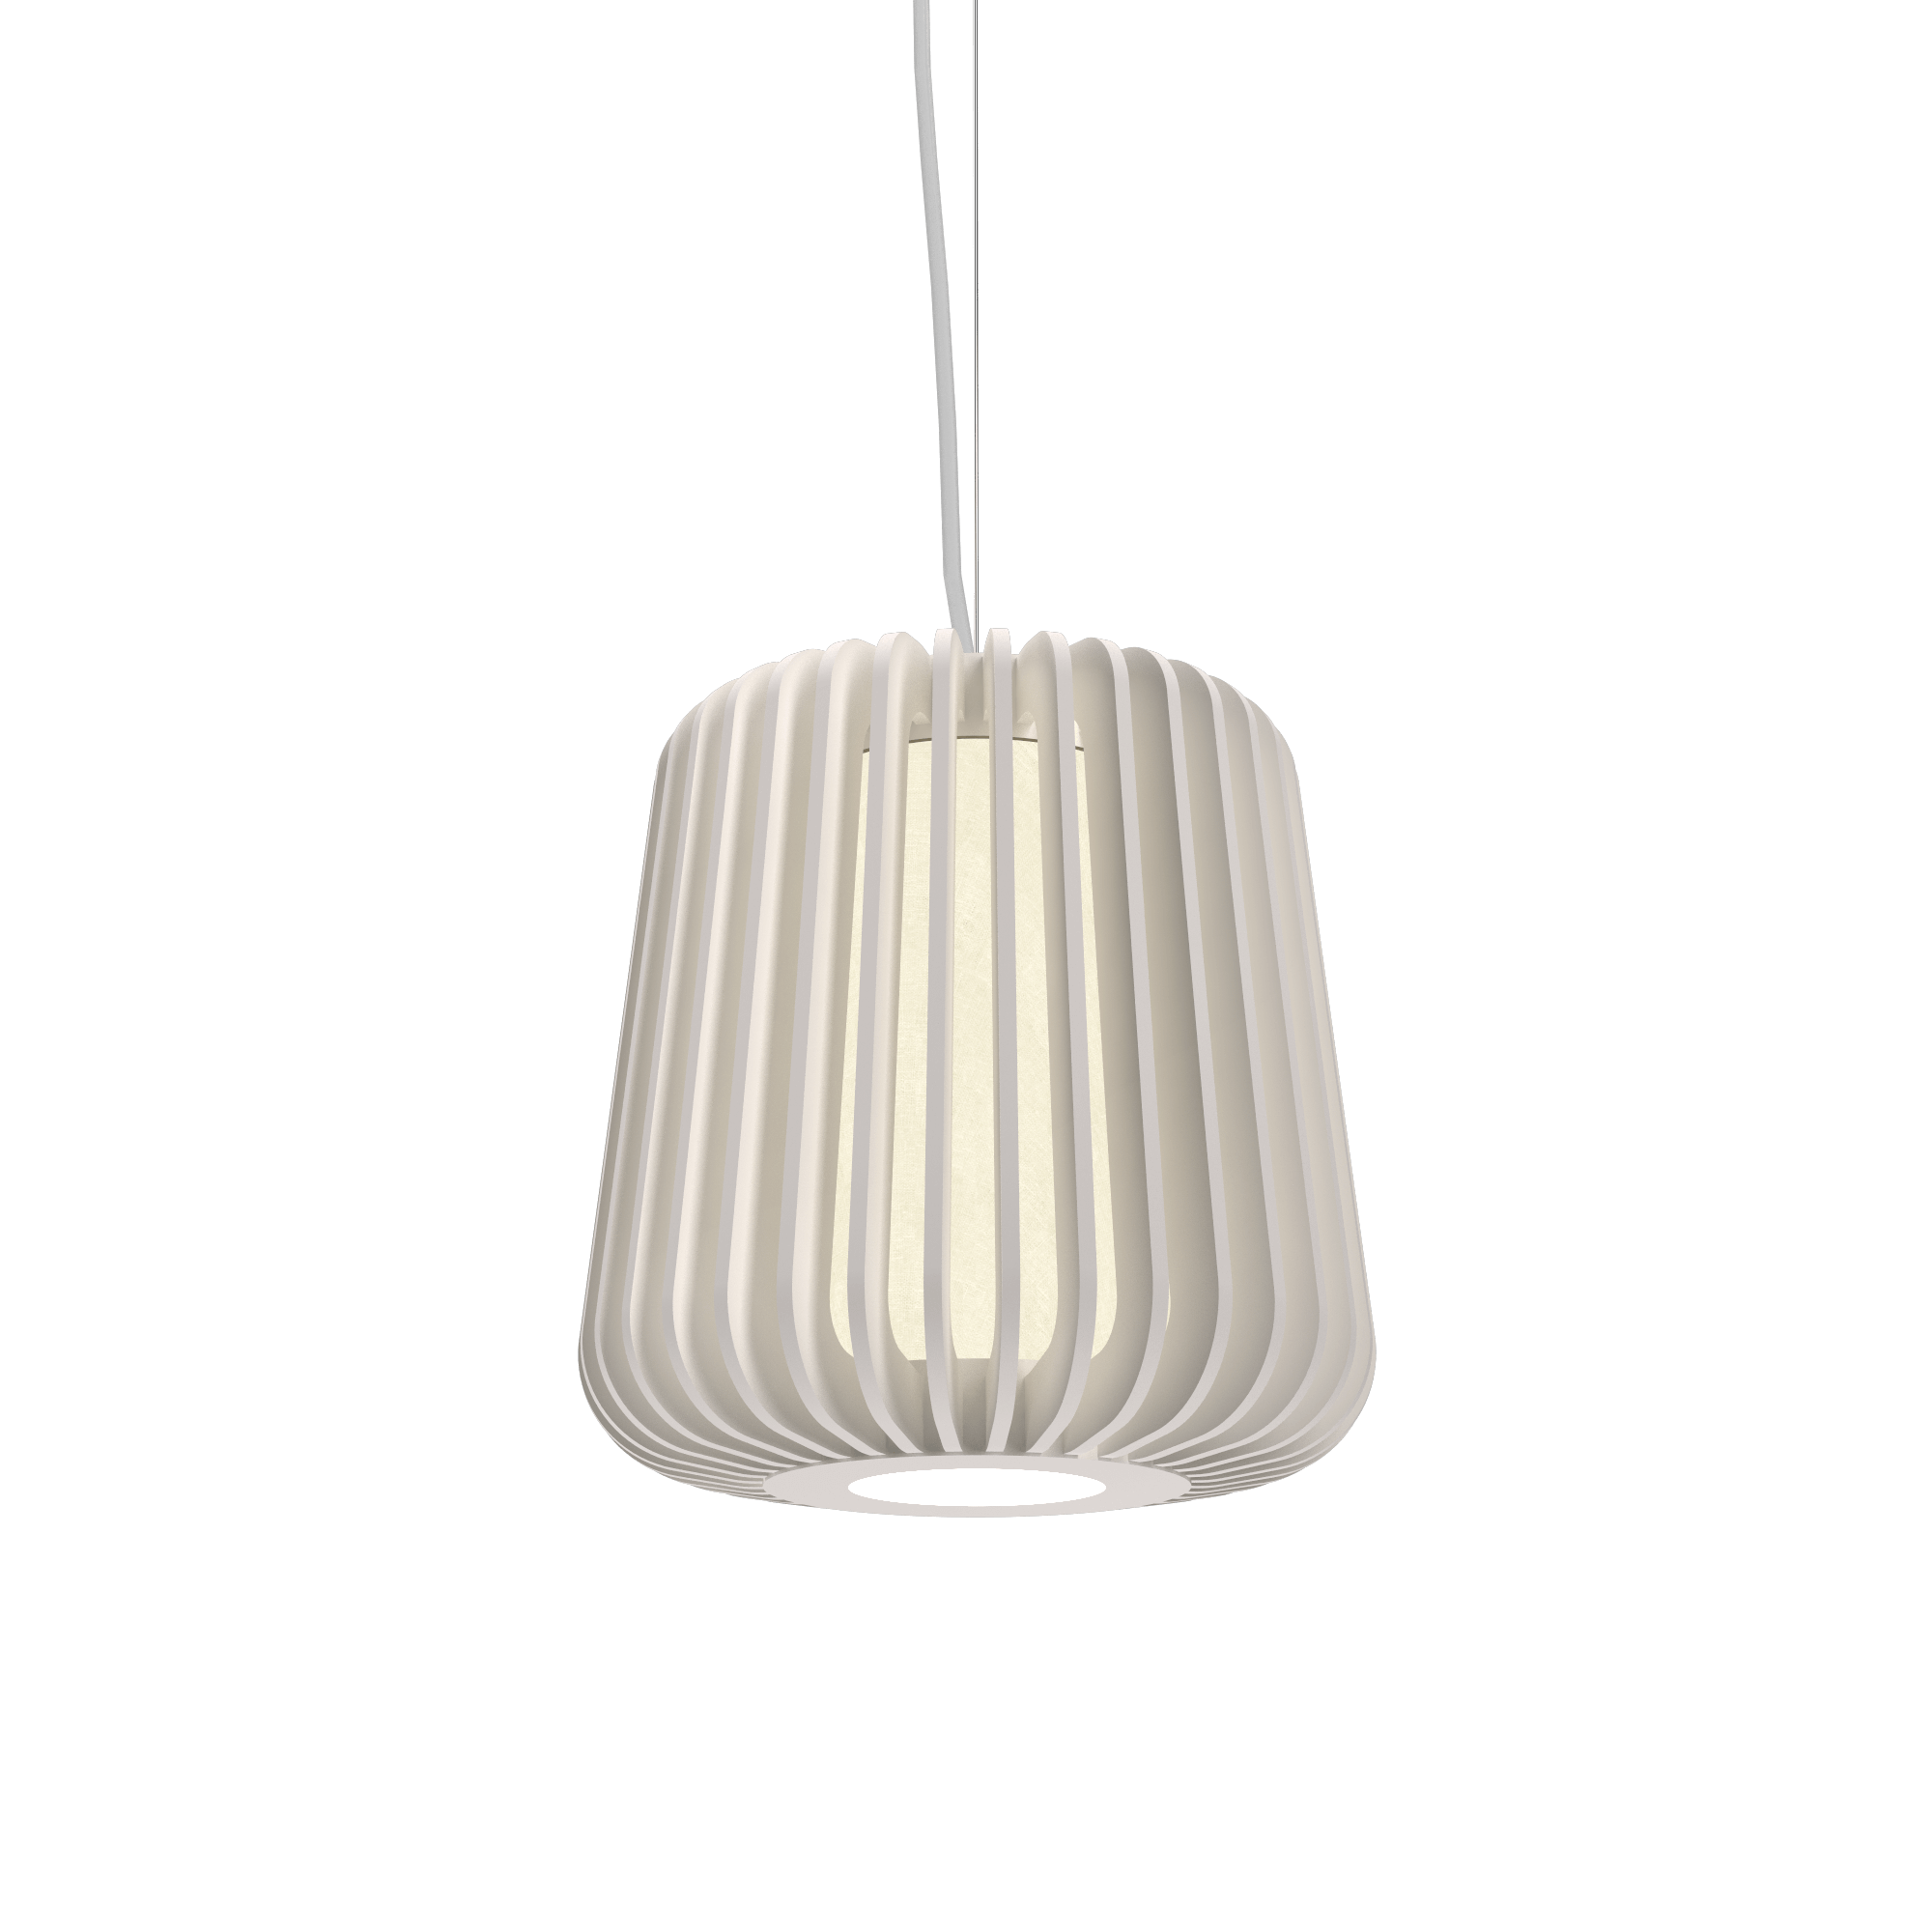 Pendant Lamp Accord Stecche Di Legno 1426 - Stecche Di Legno Line Accord Lighting | 25. Iredescent White